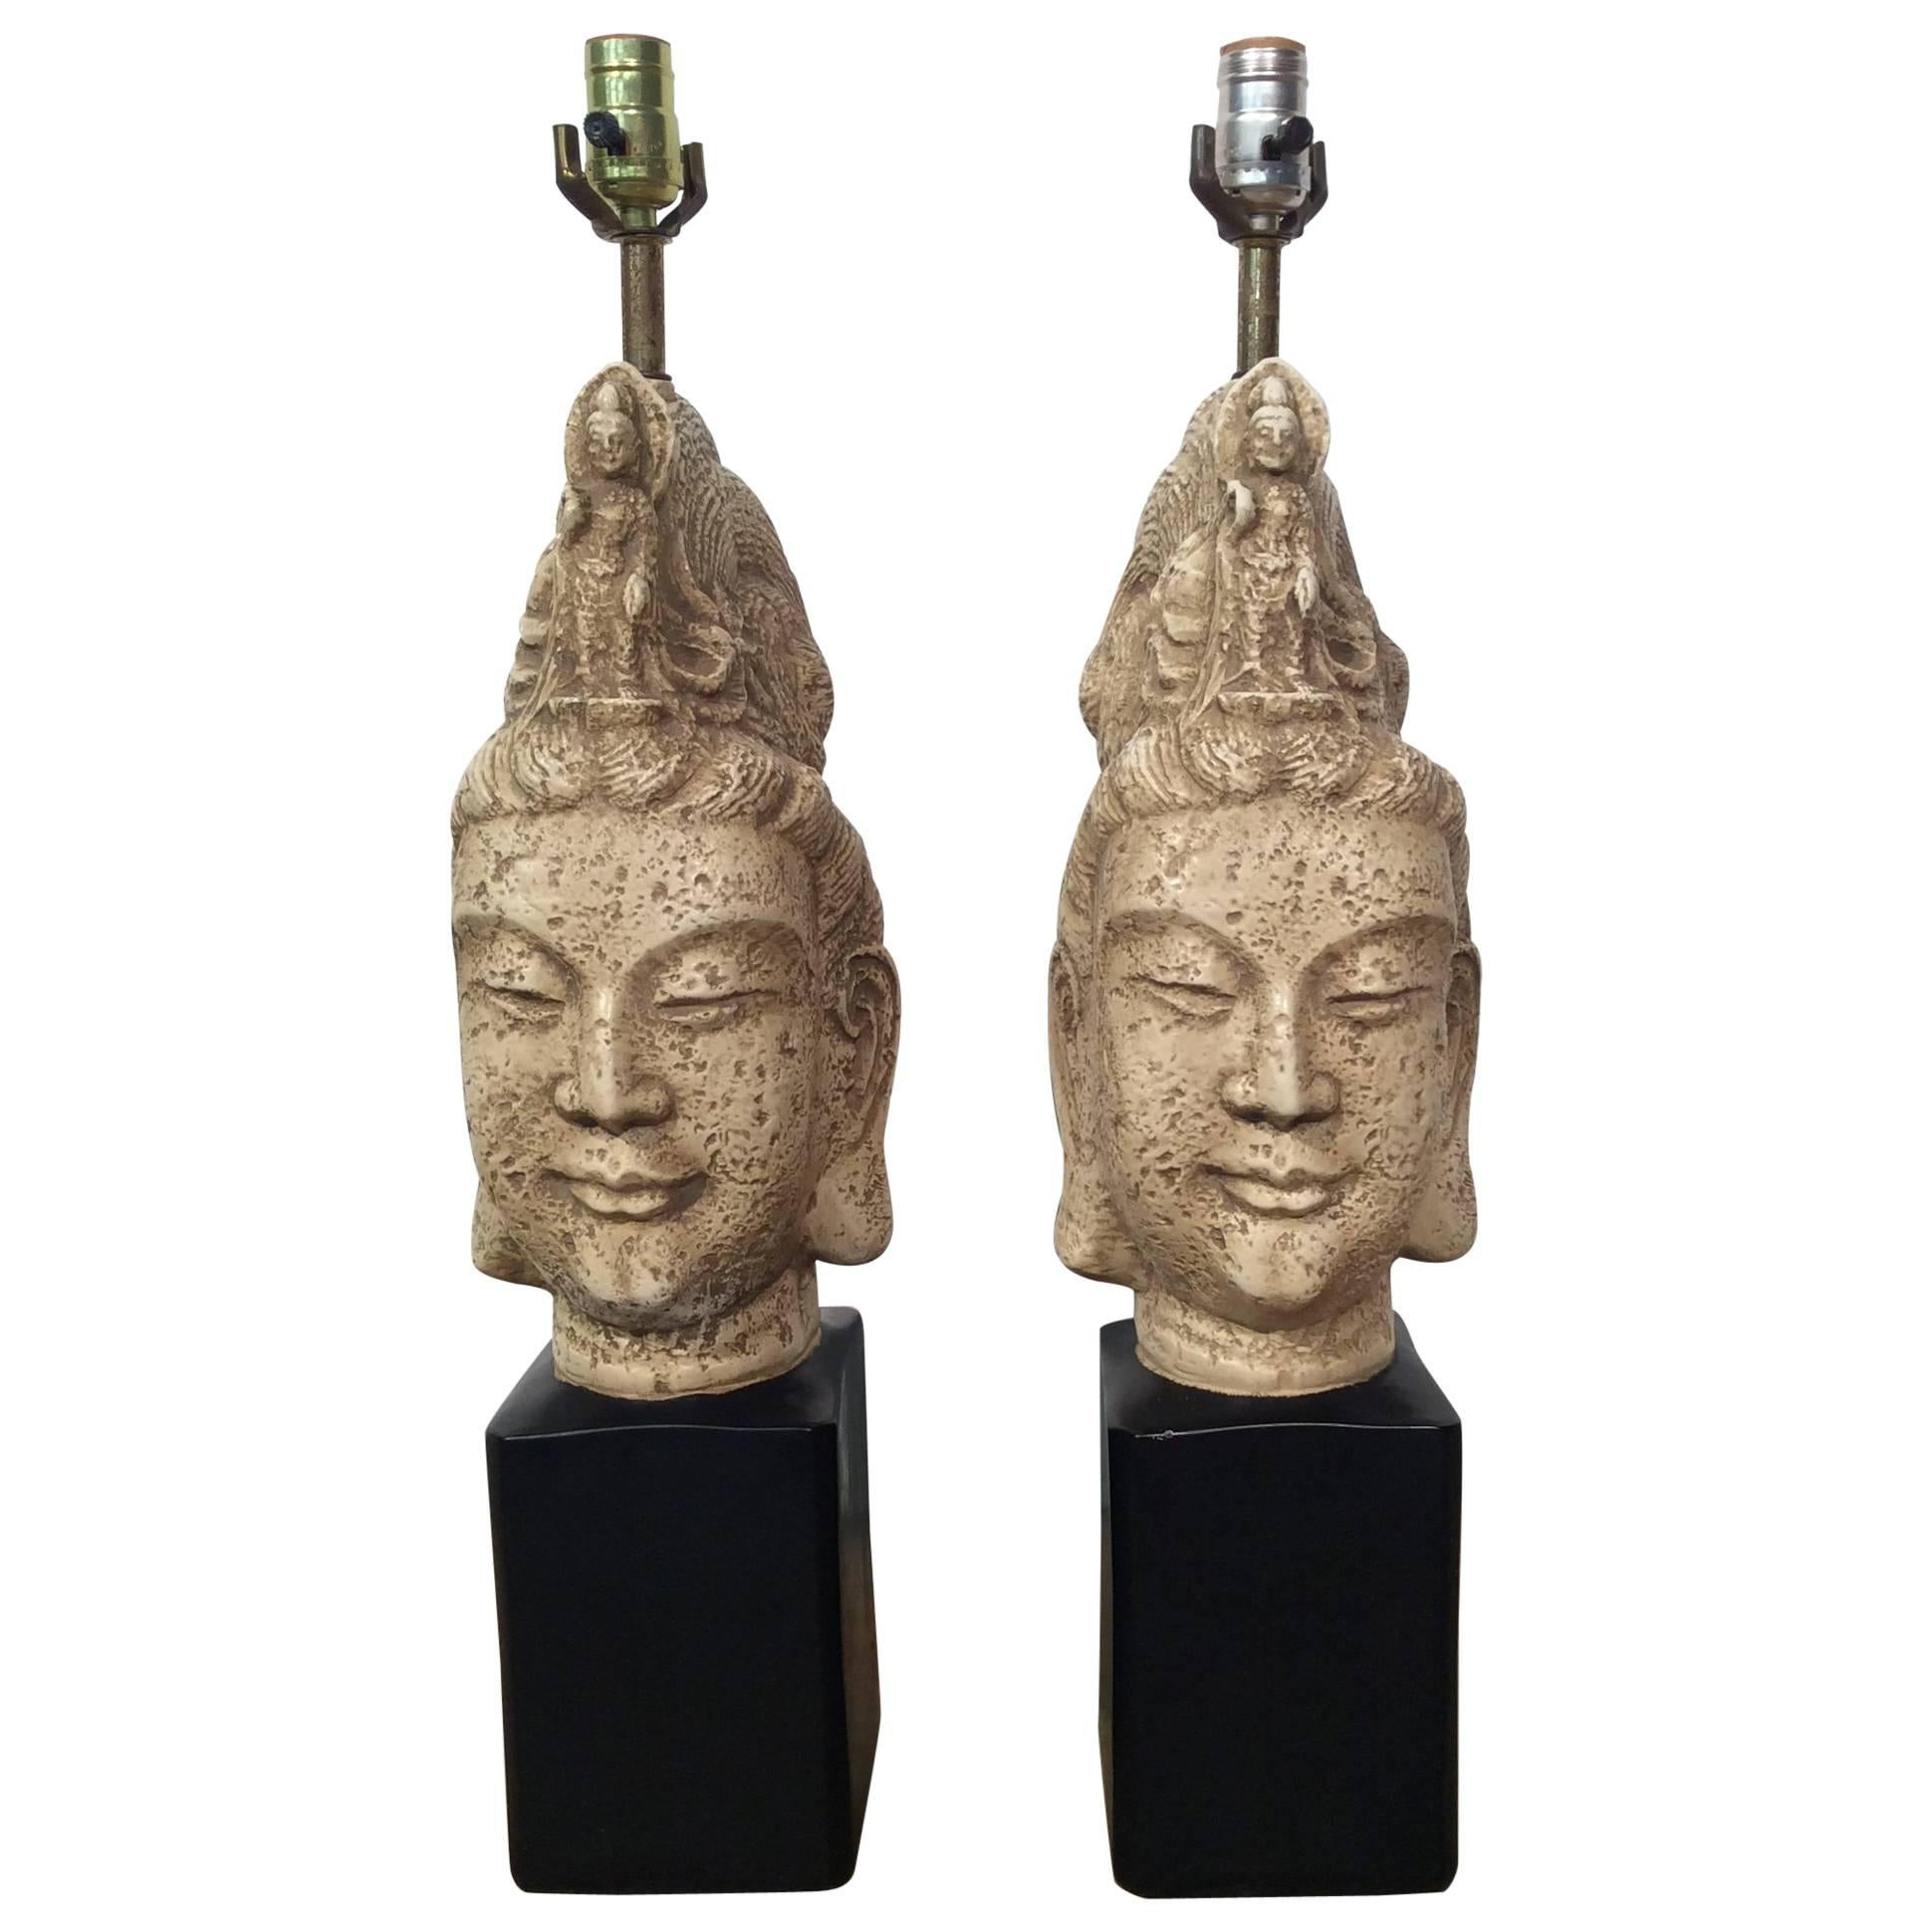 Pair Of Asian Style Mid Century Buddha Table Lamps Attributed To James Mont